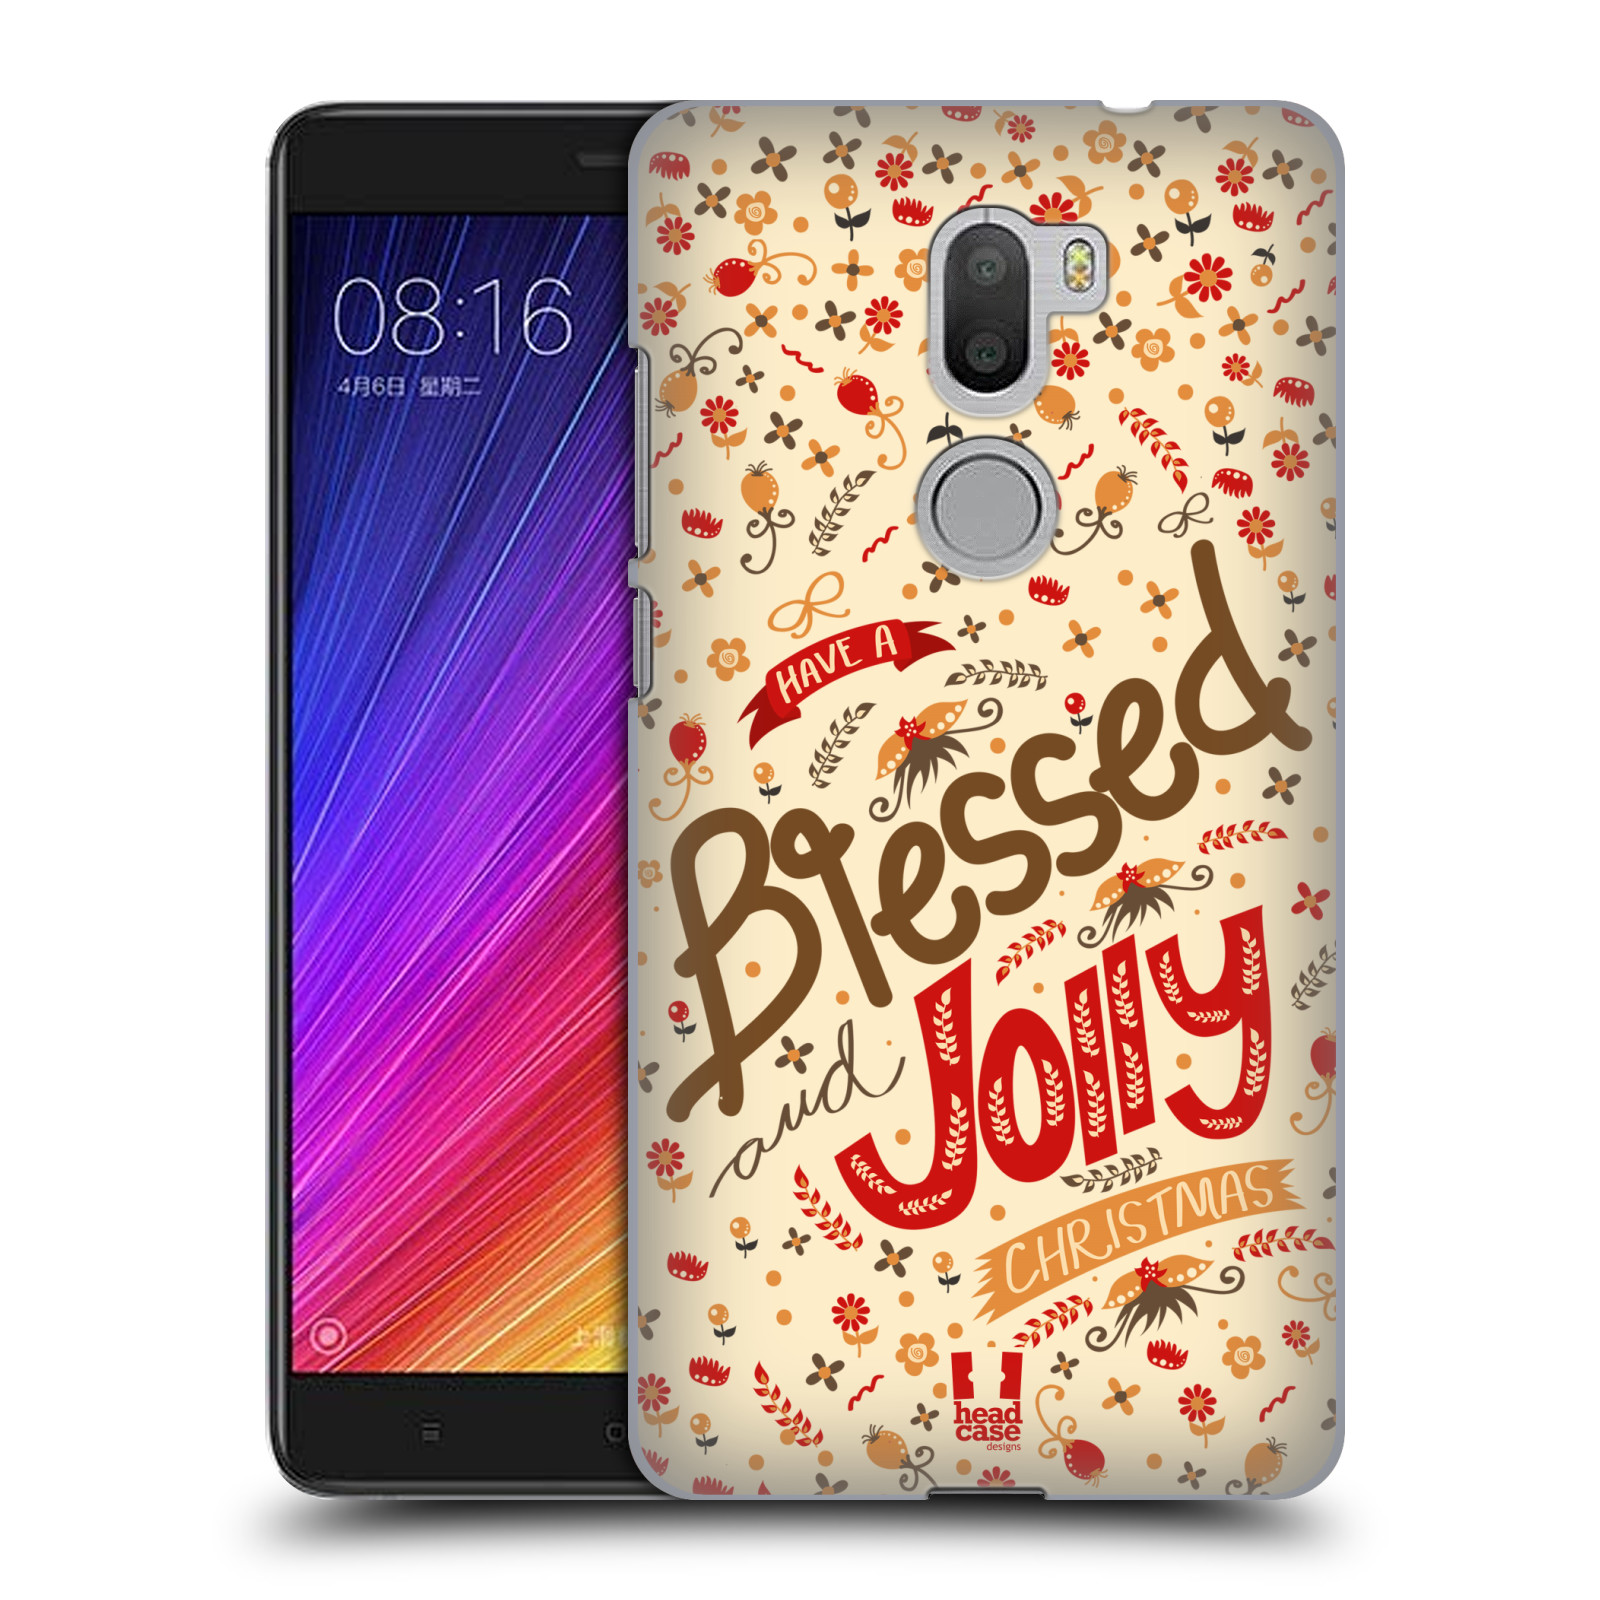 HEAD-CASE-DESIGNS-BLESSED-CHRISTMAS-HARD-BACK-CASE-FOR-XIAOMI-Mi-5s-PLUS